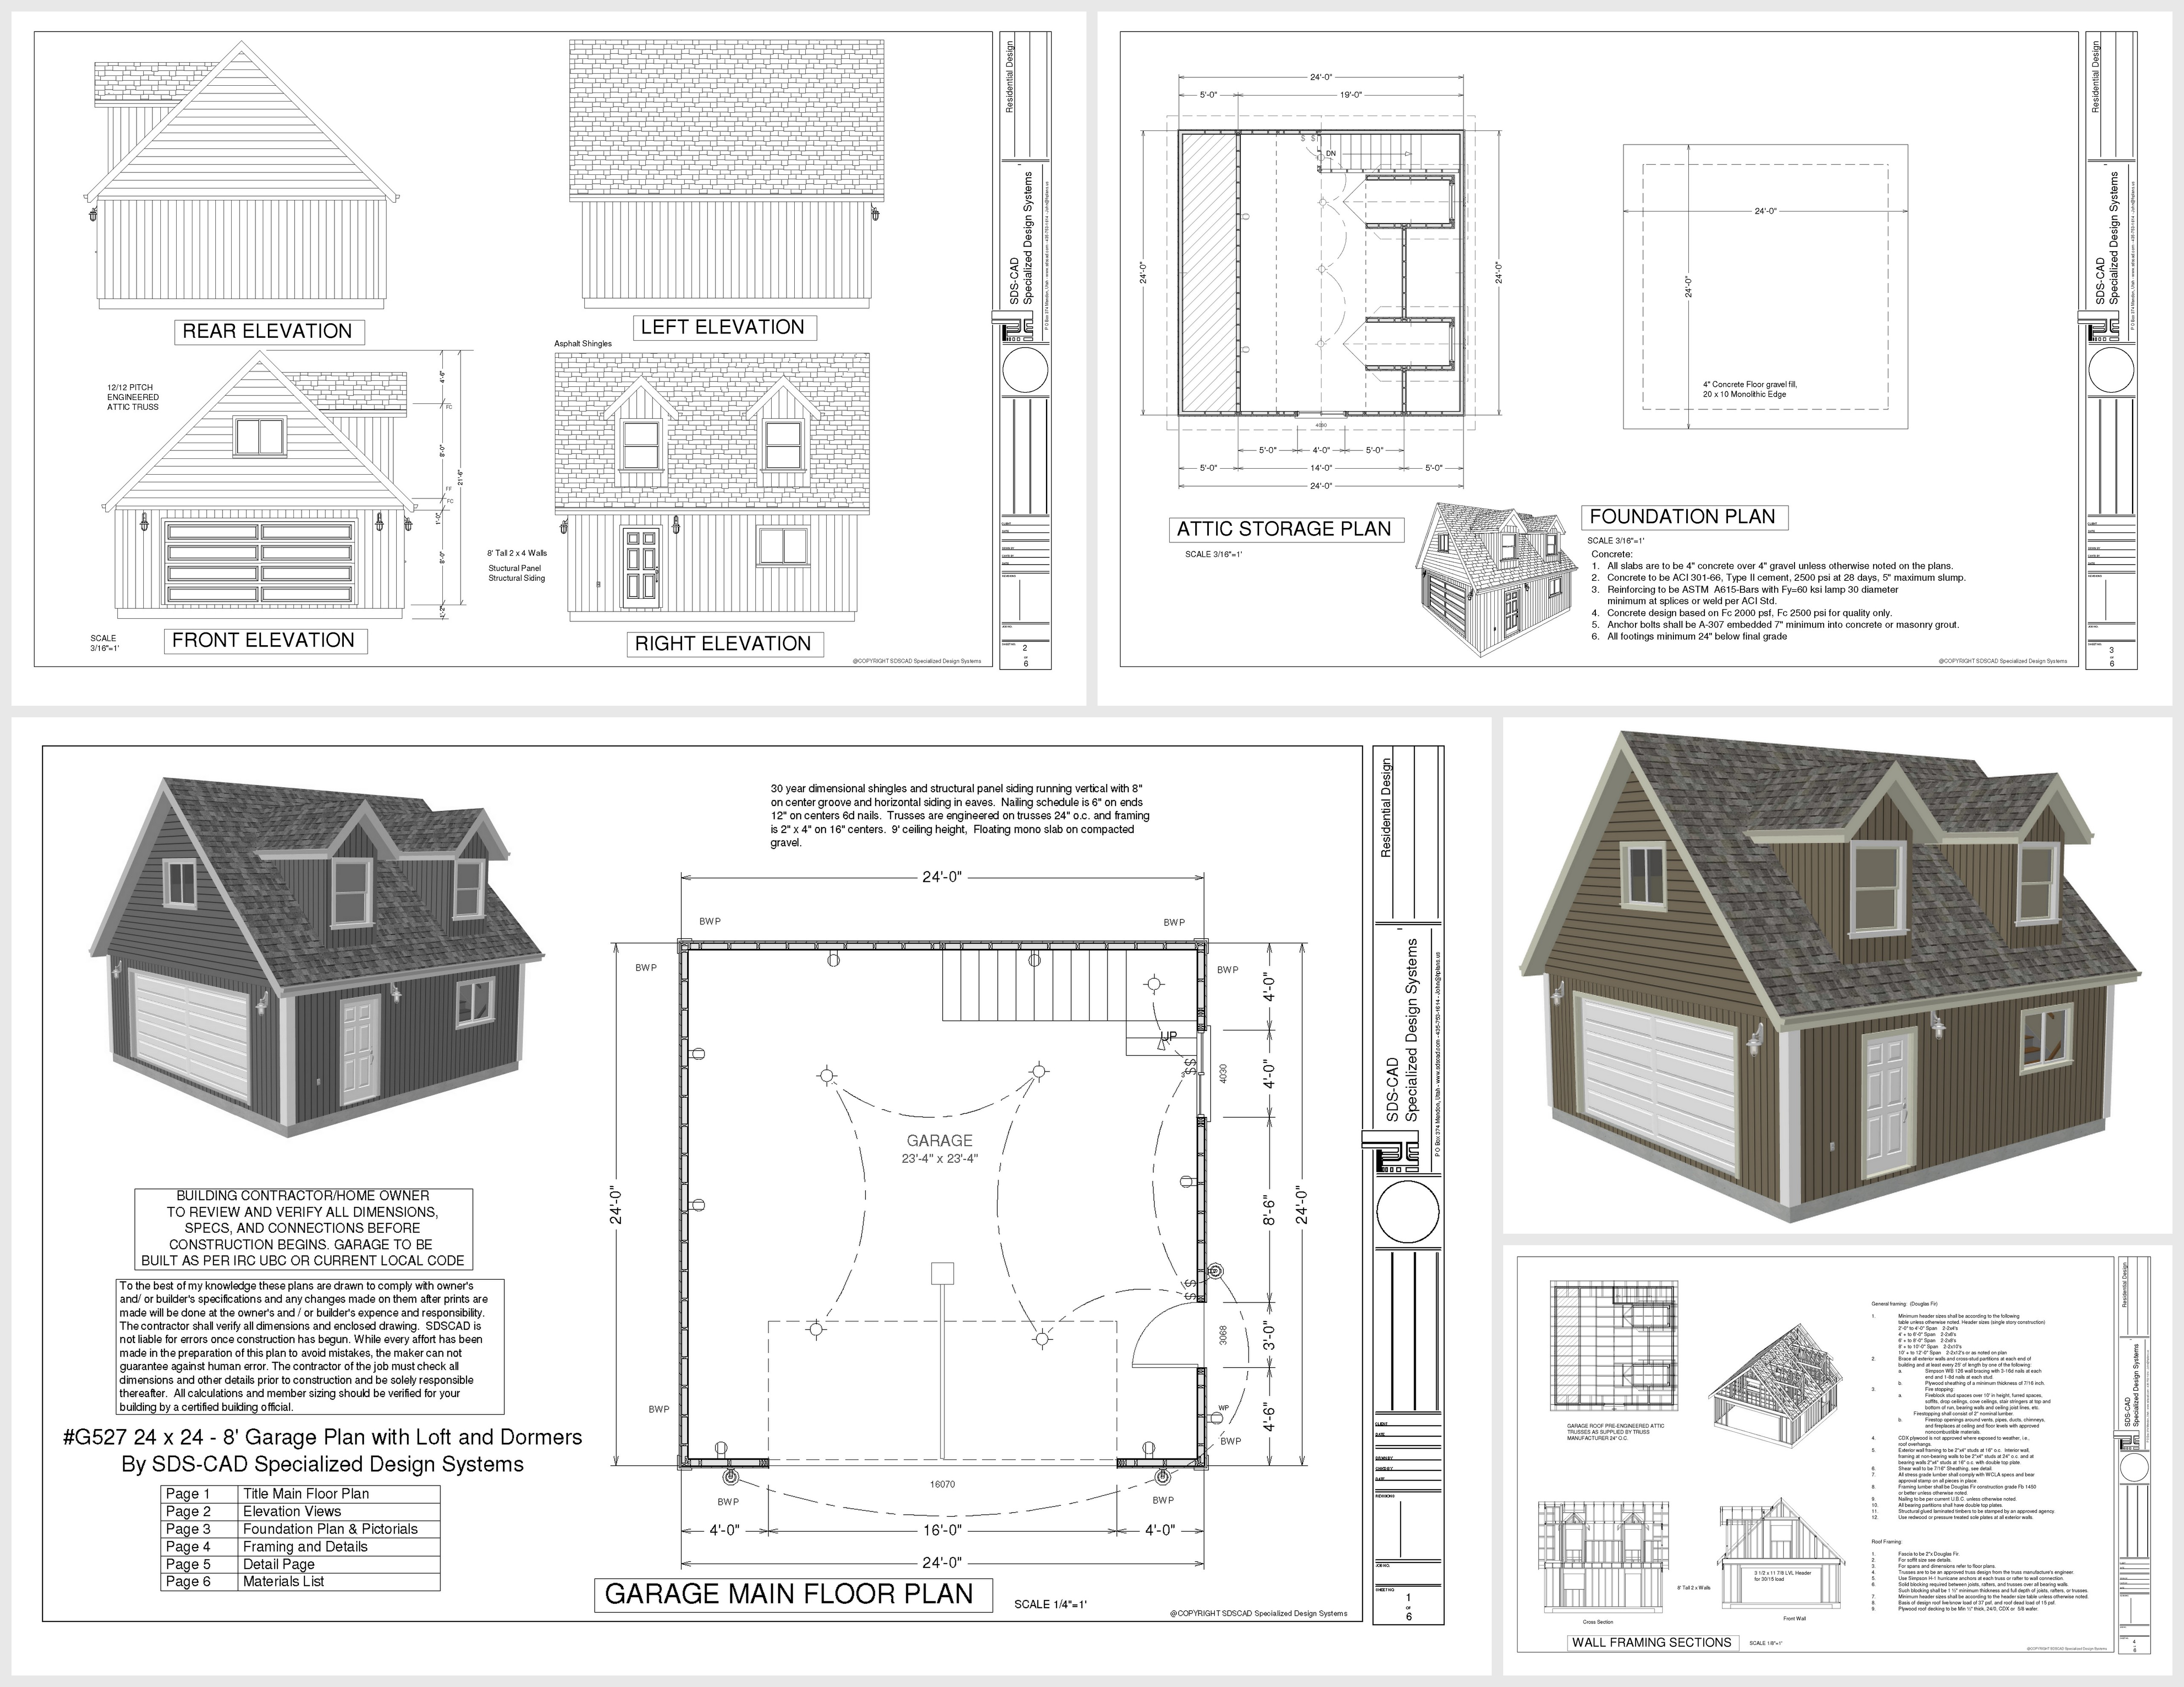 Free garage plans g527 24 x 24 x 8 loft and dormers dwg Free garage blueprints